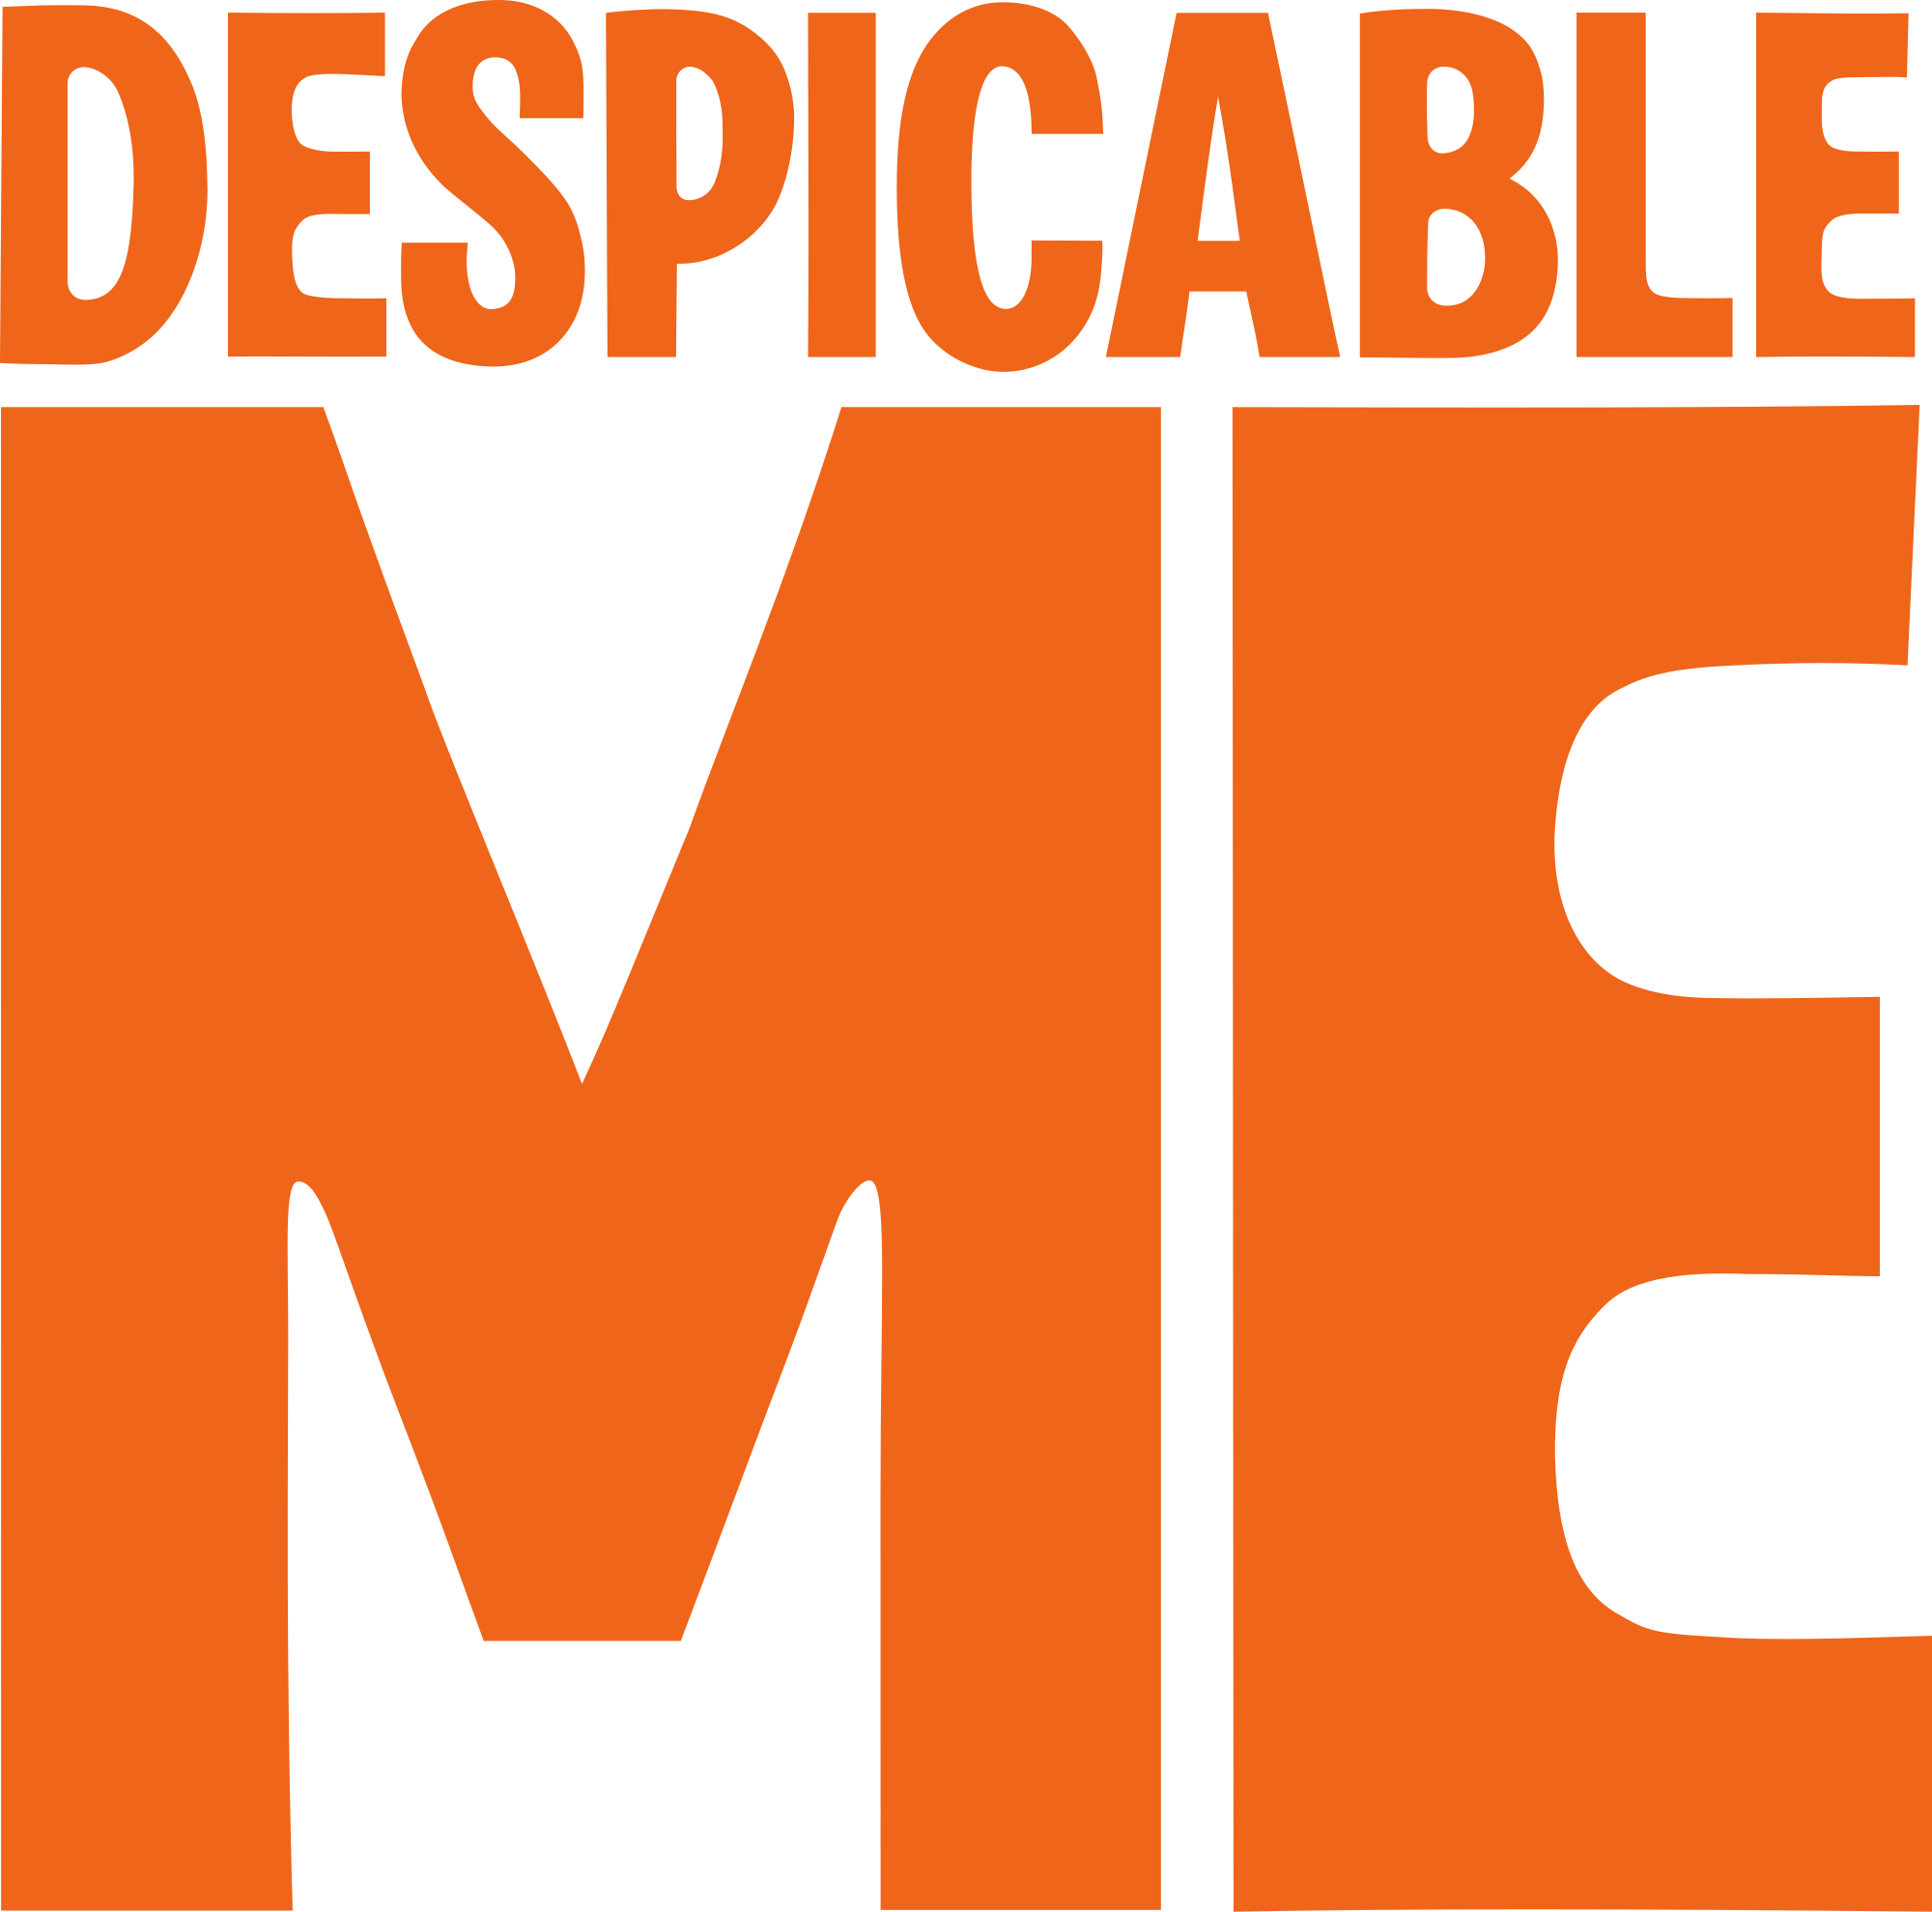 Despicable me 3 logo png. Franchise wikipedia svg